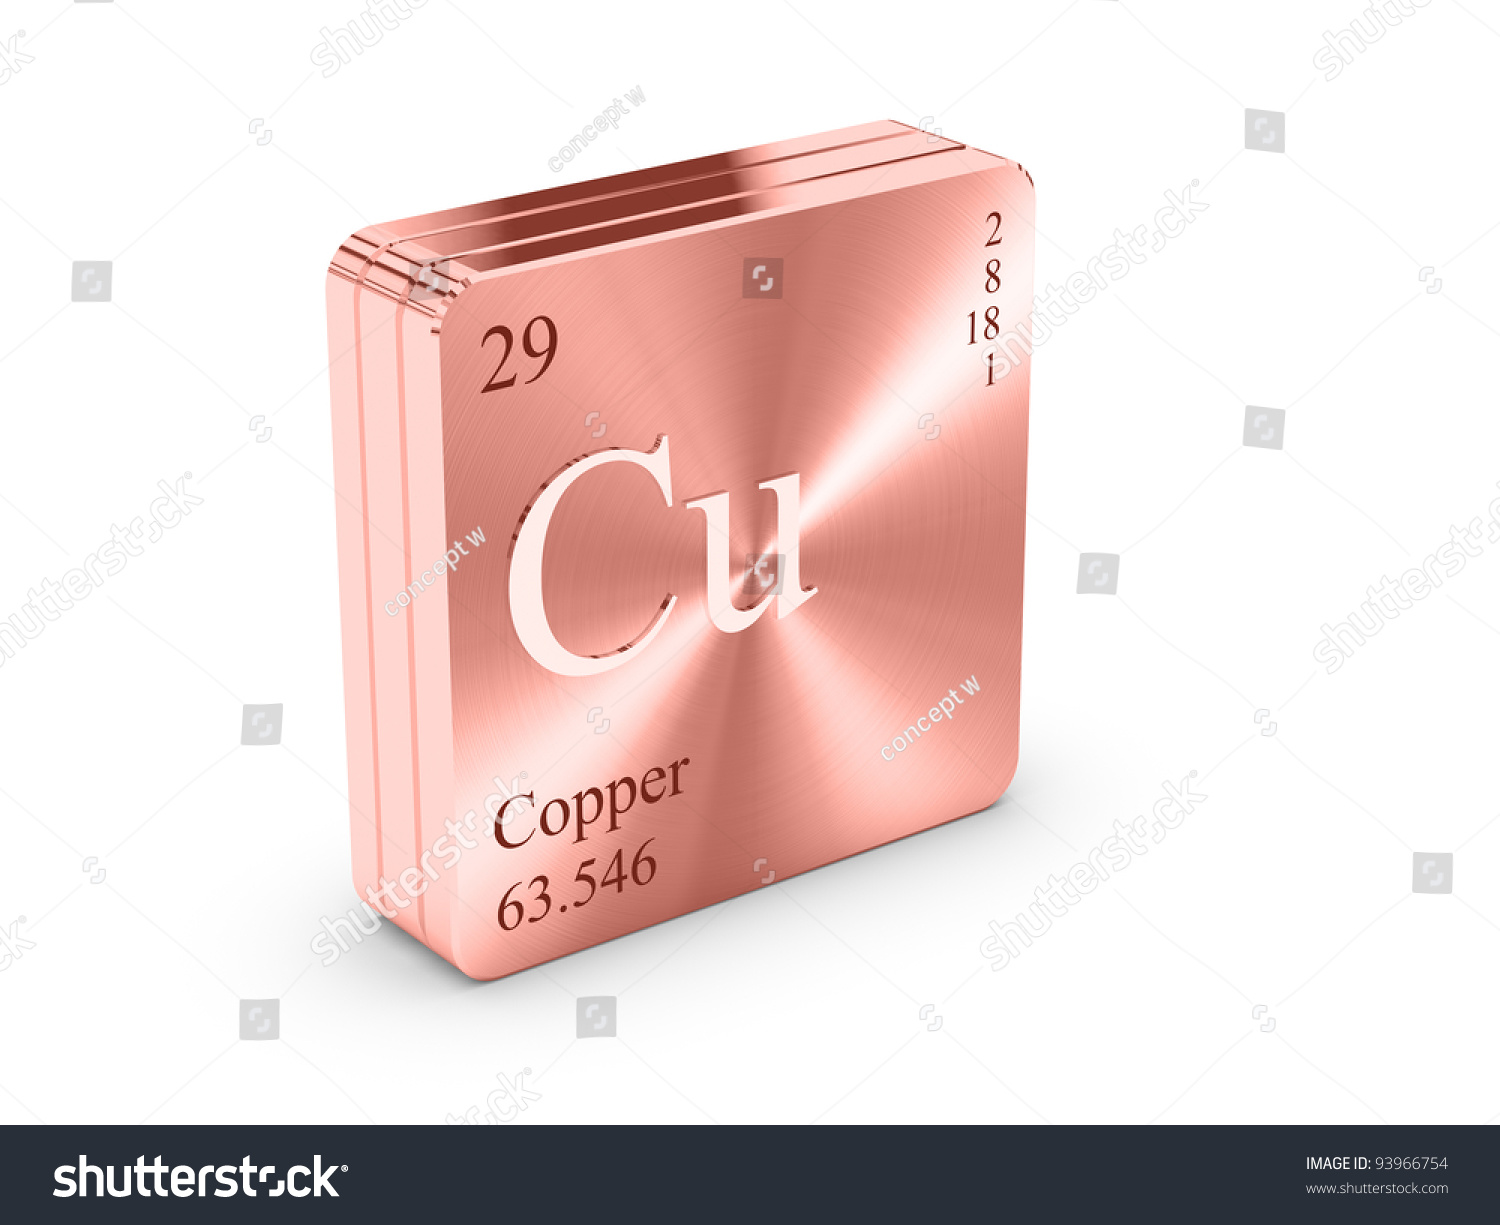 Copper element periodic table image collections periodic table copper element periodic table on copper stock illustration copper element of the periodic table on copper gamestrikefo Gallery